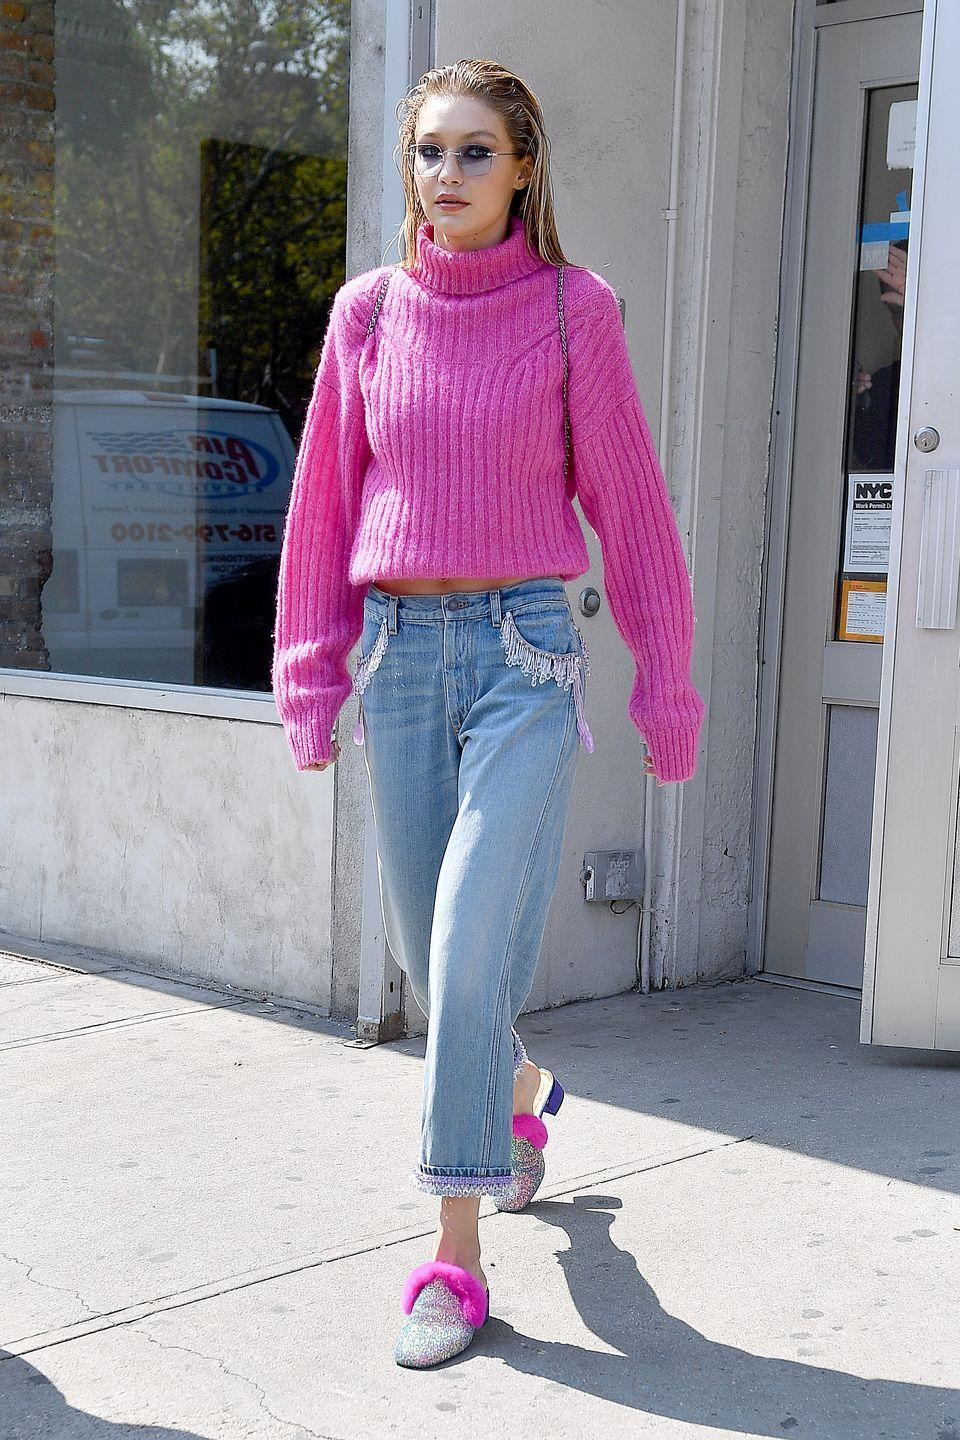 <p>In a hot pink turtleneck sweater, tinted sunglasses, beaded jeans, and pink fur-lined glittery loafers while out in New York.</p>